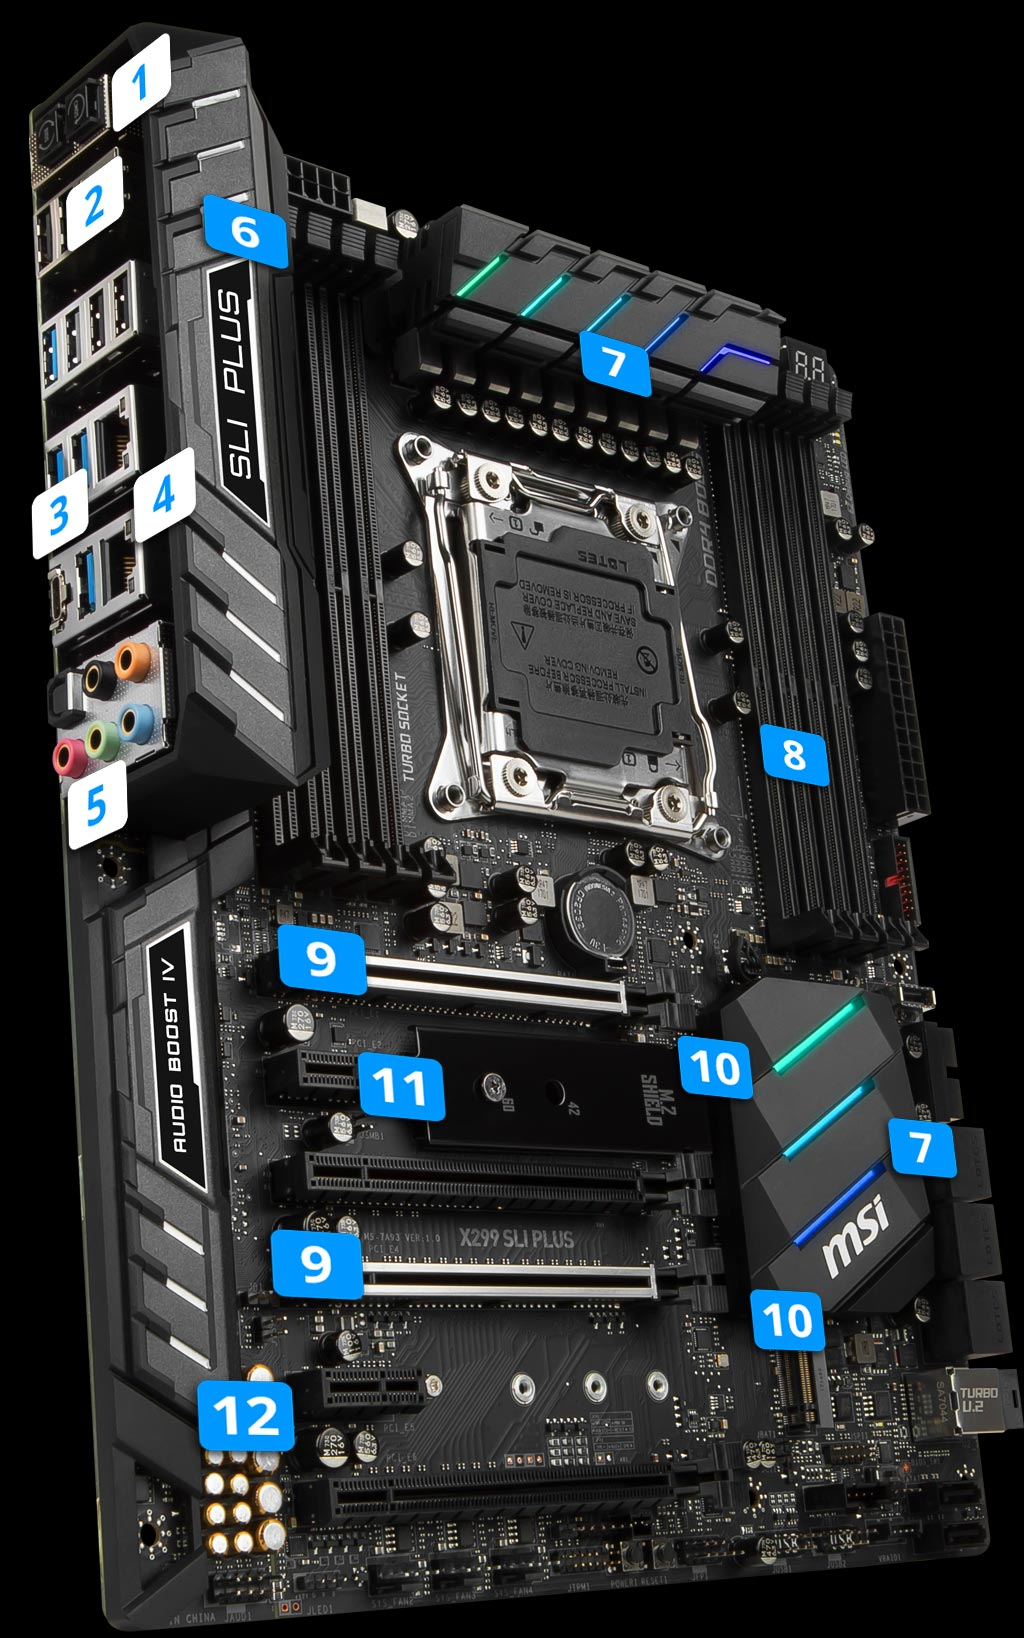 https://asset.msi.com/global/picture/image/feature/mb/X299/X299-sli-plus/msi-x299-overview-hero-sli-plus-overview.jpg